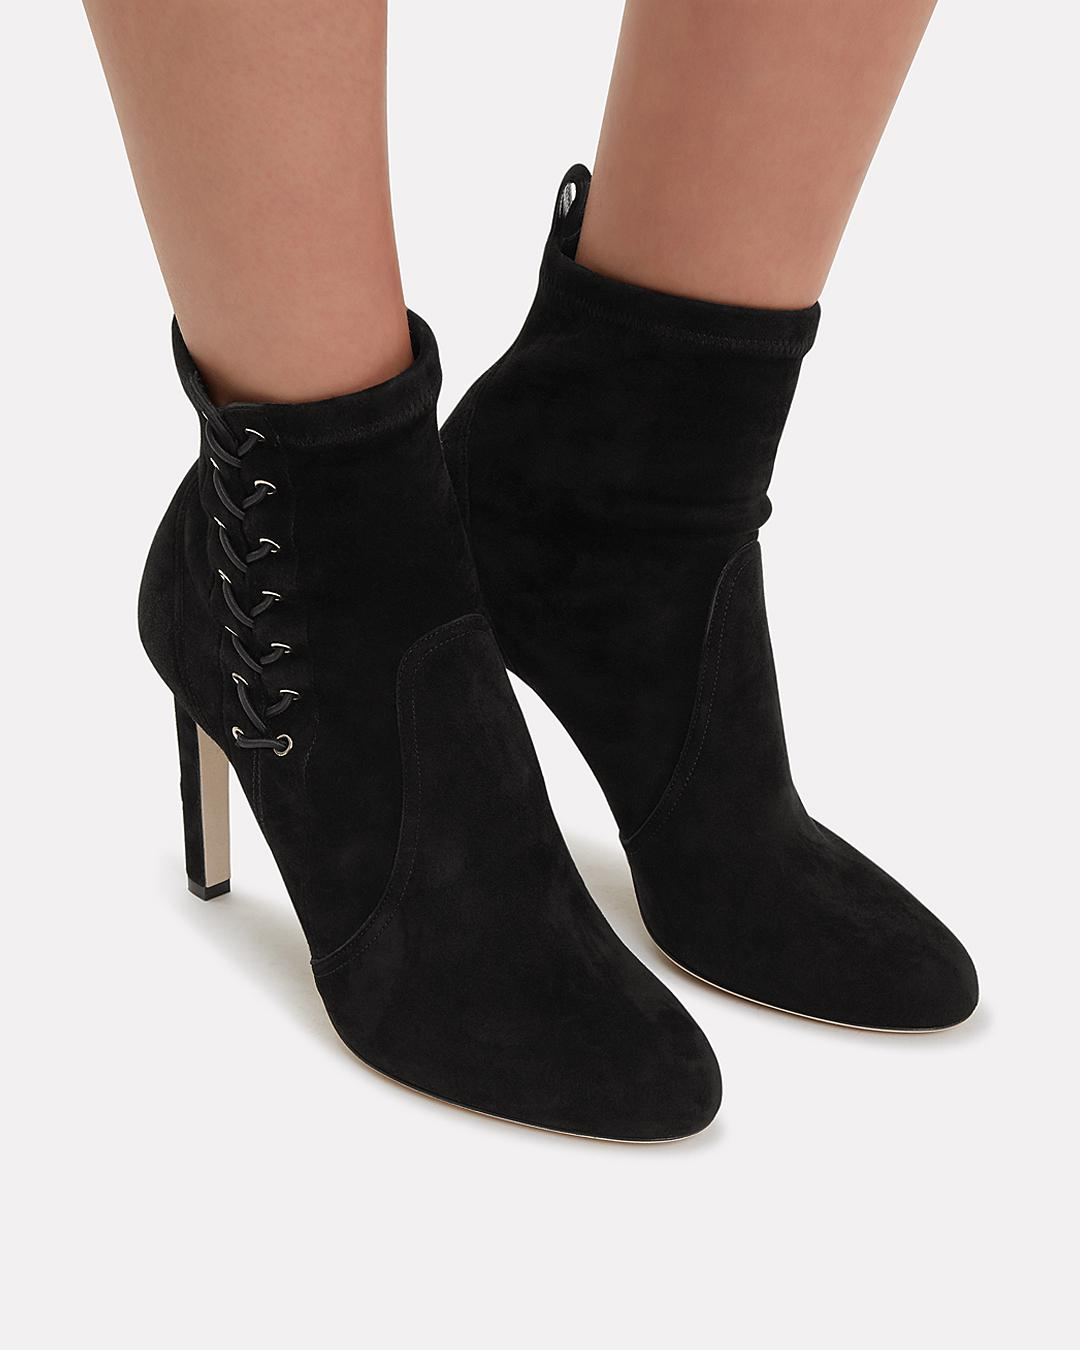 efddab26540 Lyst - Jimmy Choo Mallory Lace Side Booties in Black